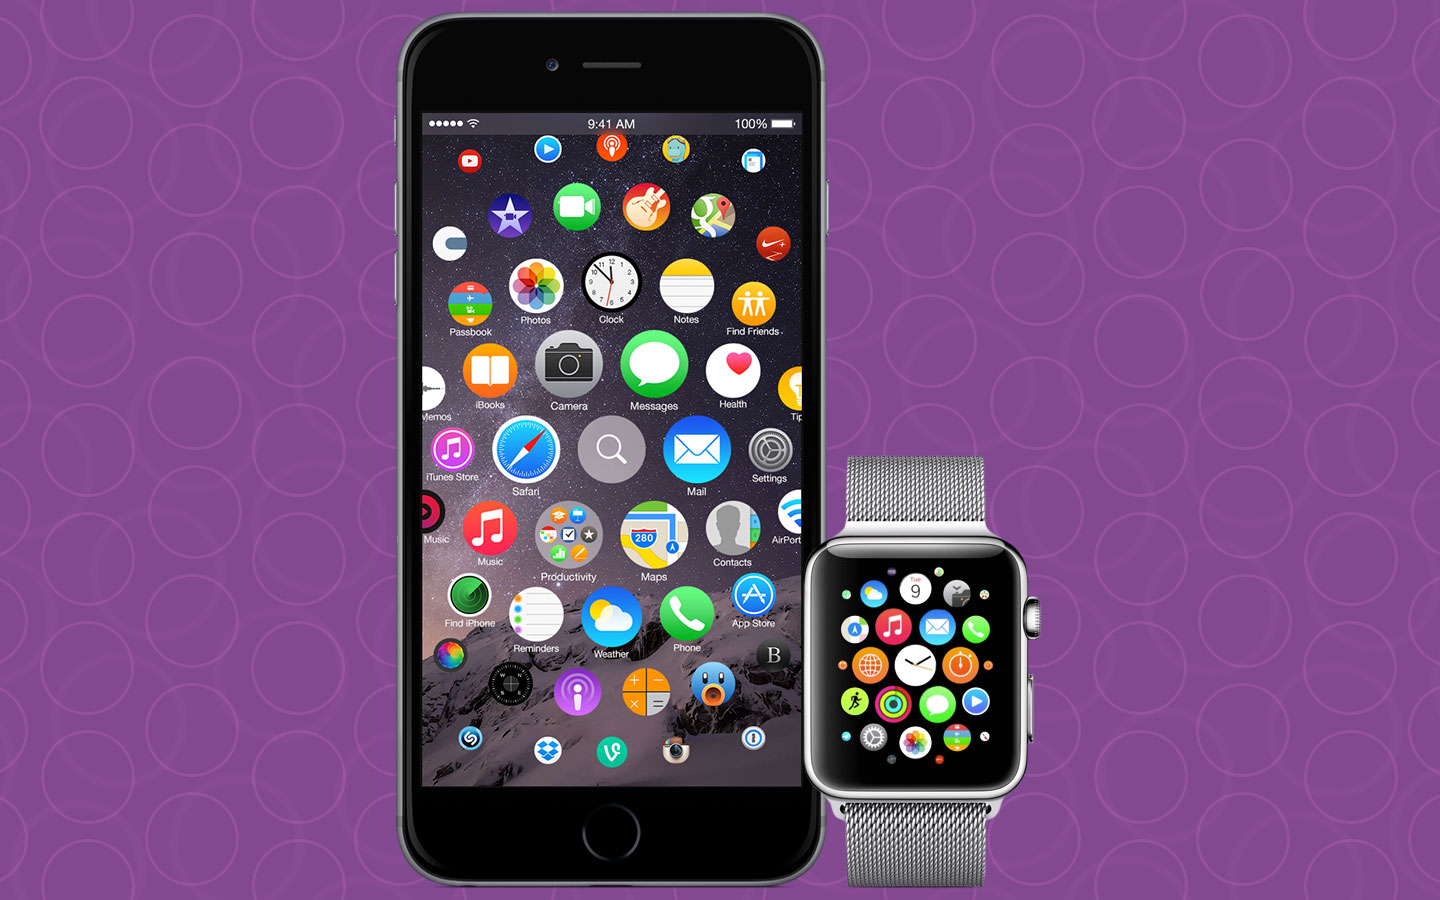 iOS 9 Redesign: iPhone 7 mit Apple Watch Interface? 10